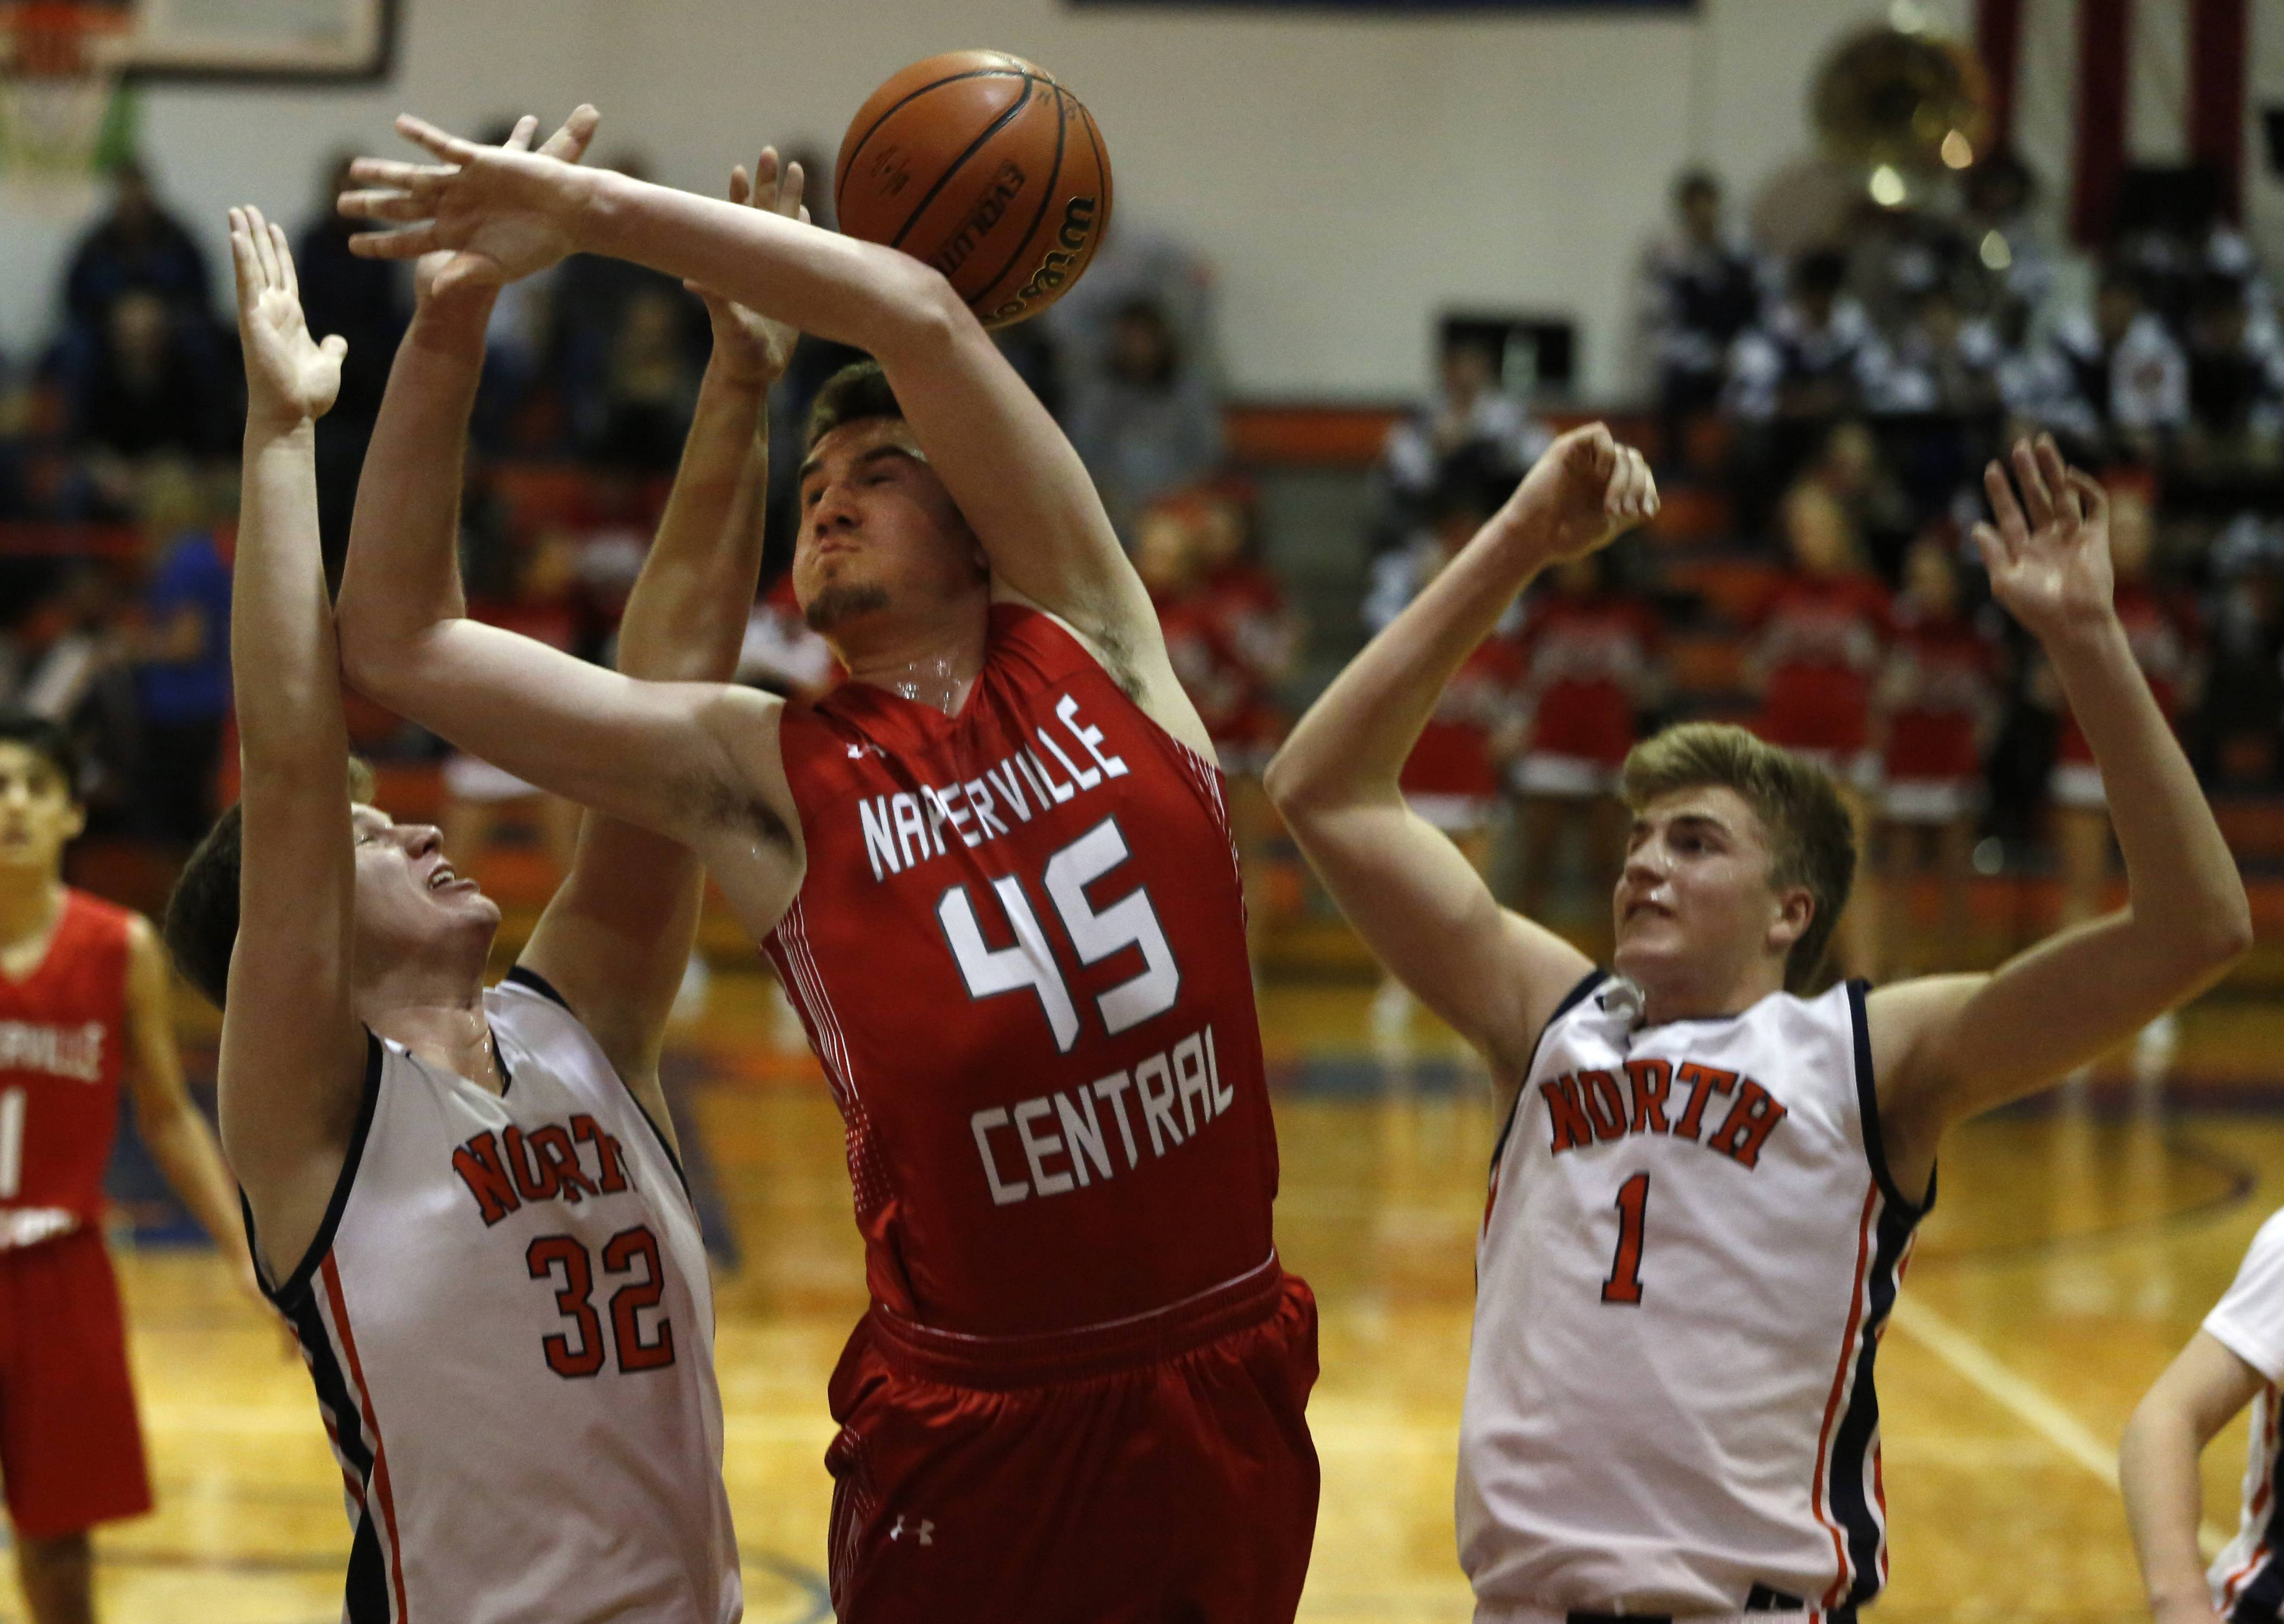 Images: Naperville North vs. Naperville Central, boys basketball